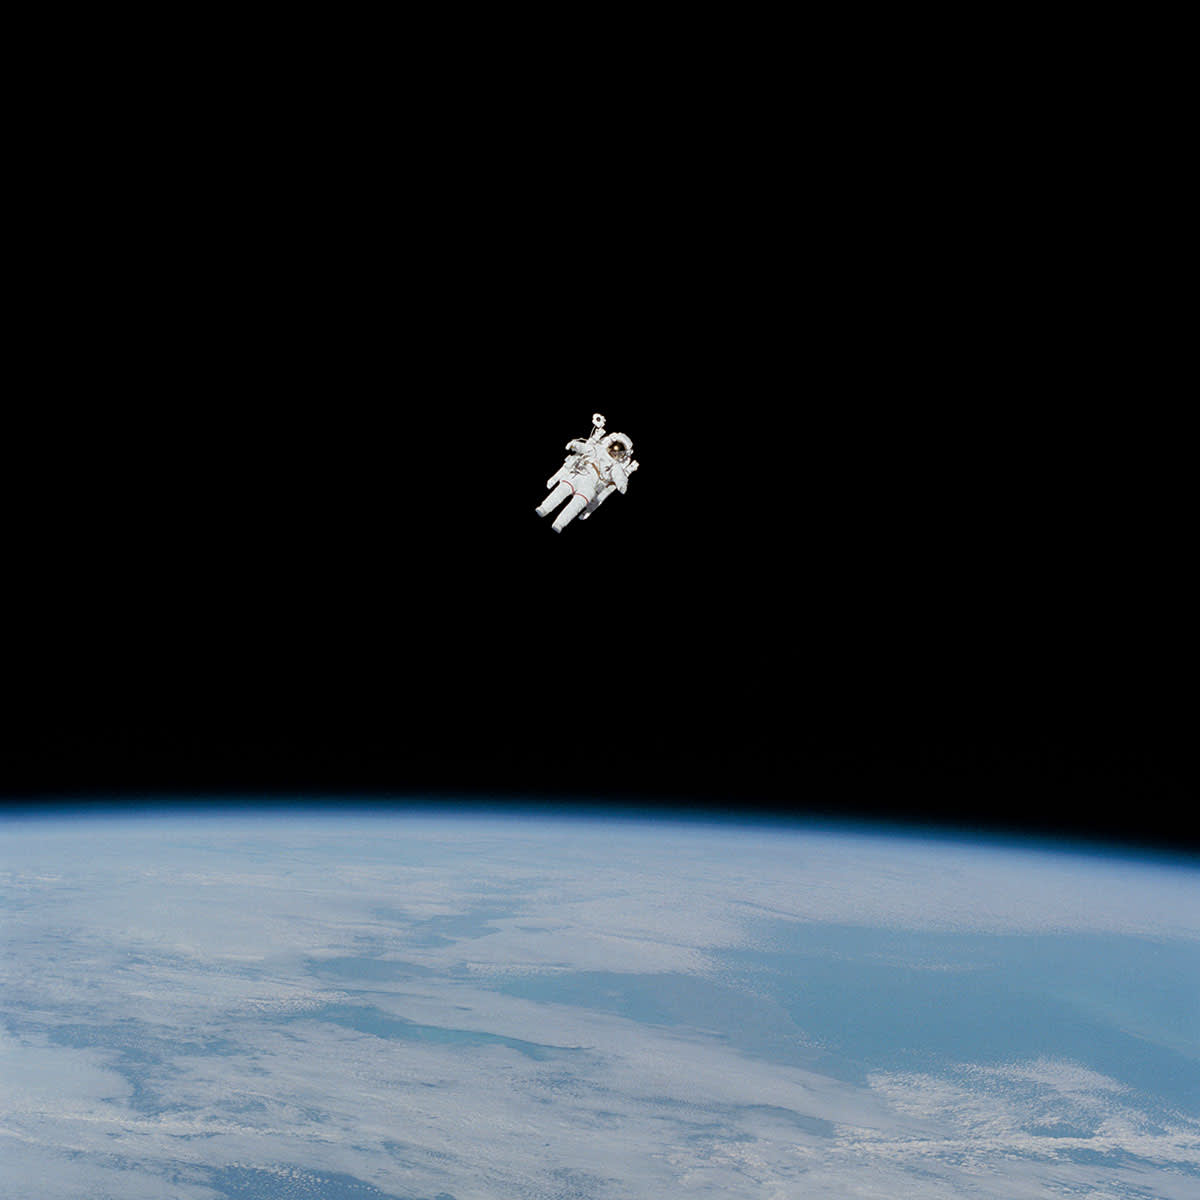 Photo of spacewalker floating above the earth